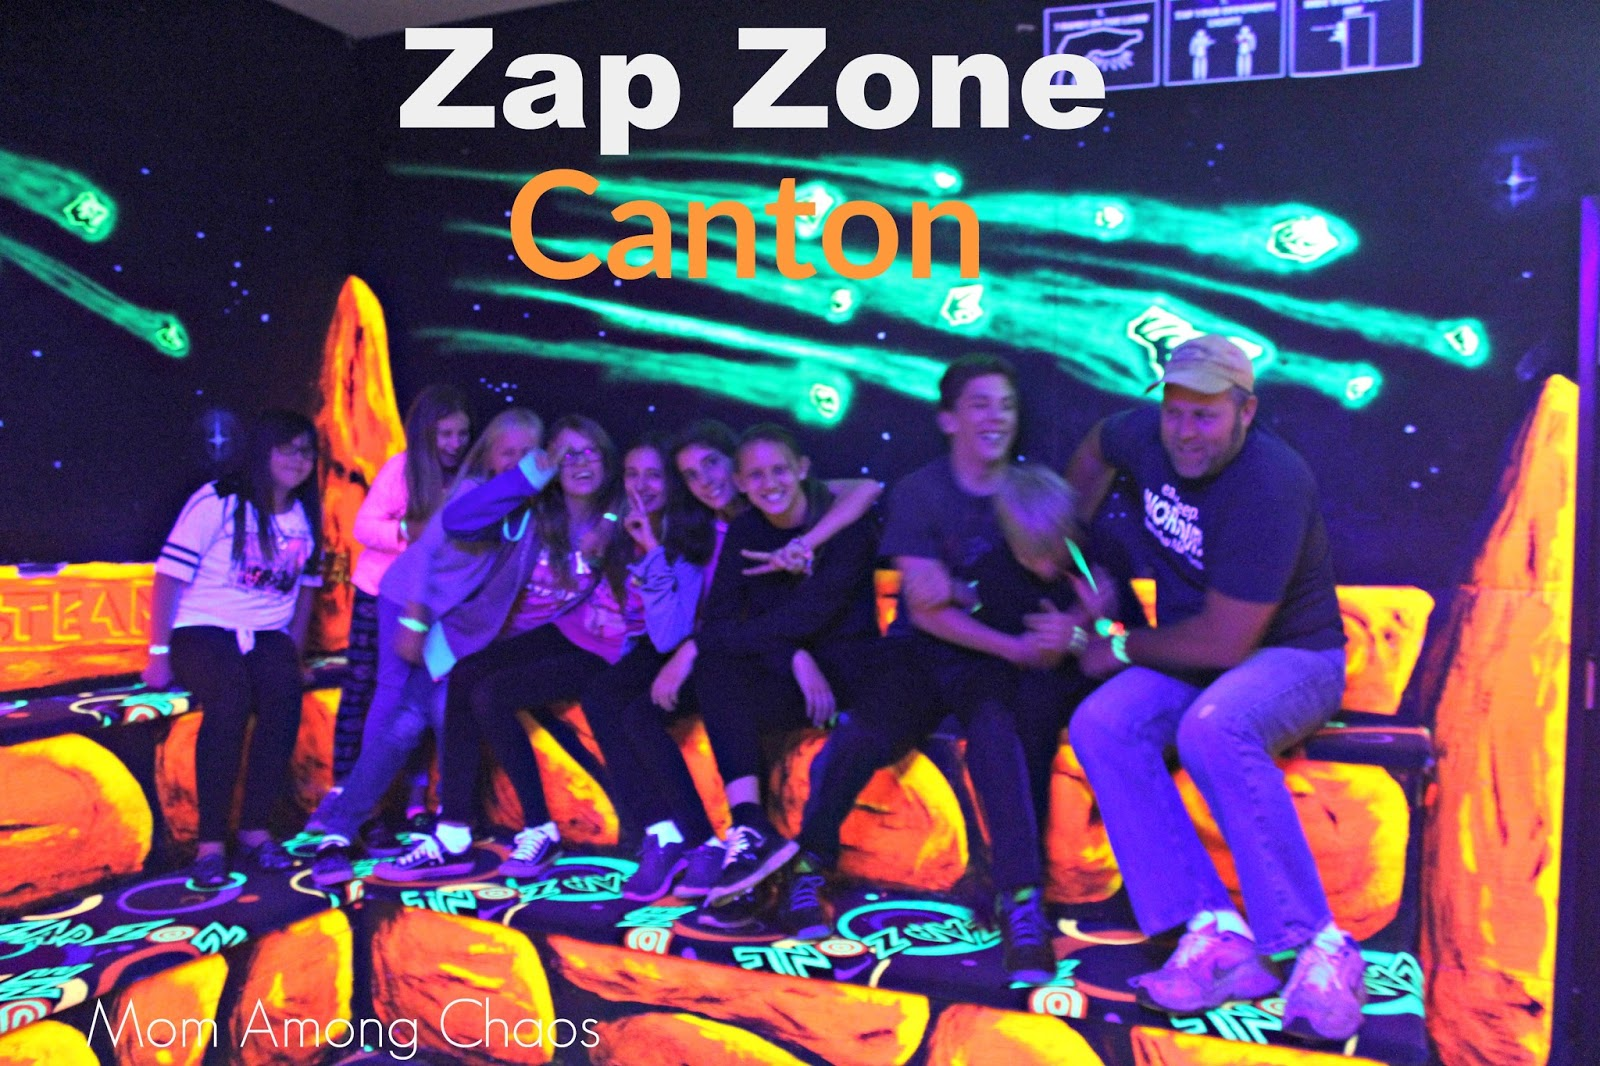 image about Zap Zone Printable Coupons referred to as Zap zone discount codes : Saddleback bowling discount codes